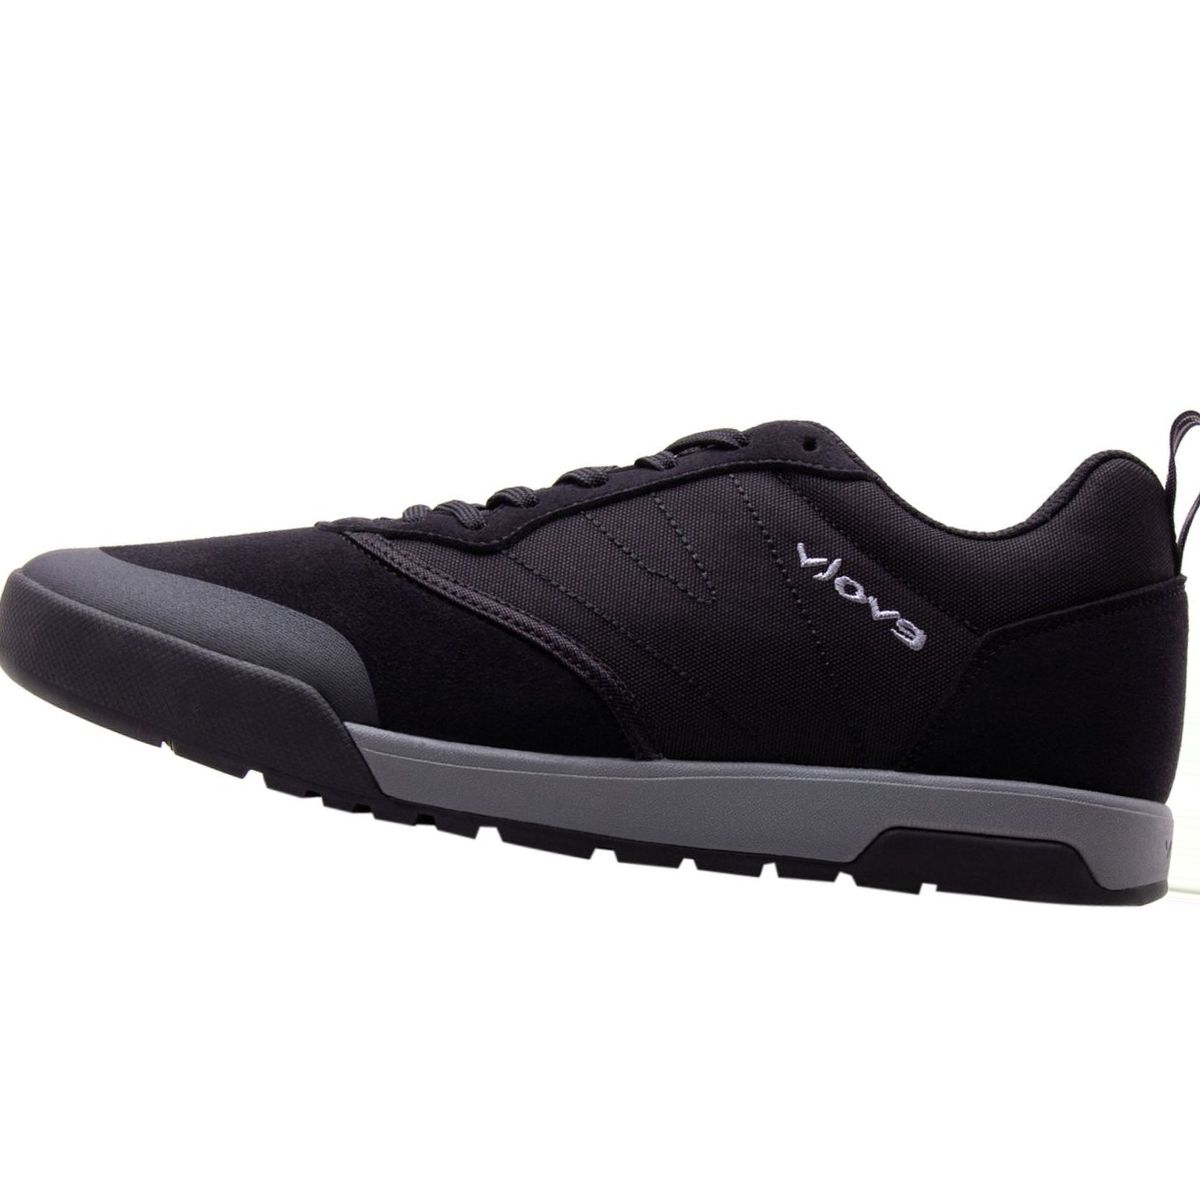 Evolv Rebel Approach Shoe - Men's